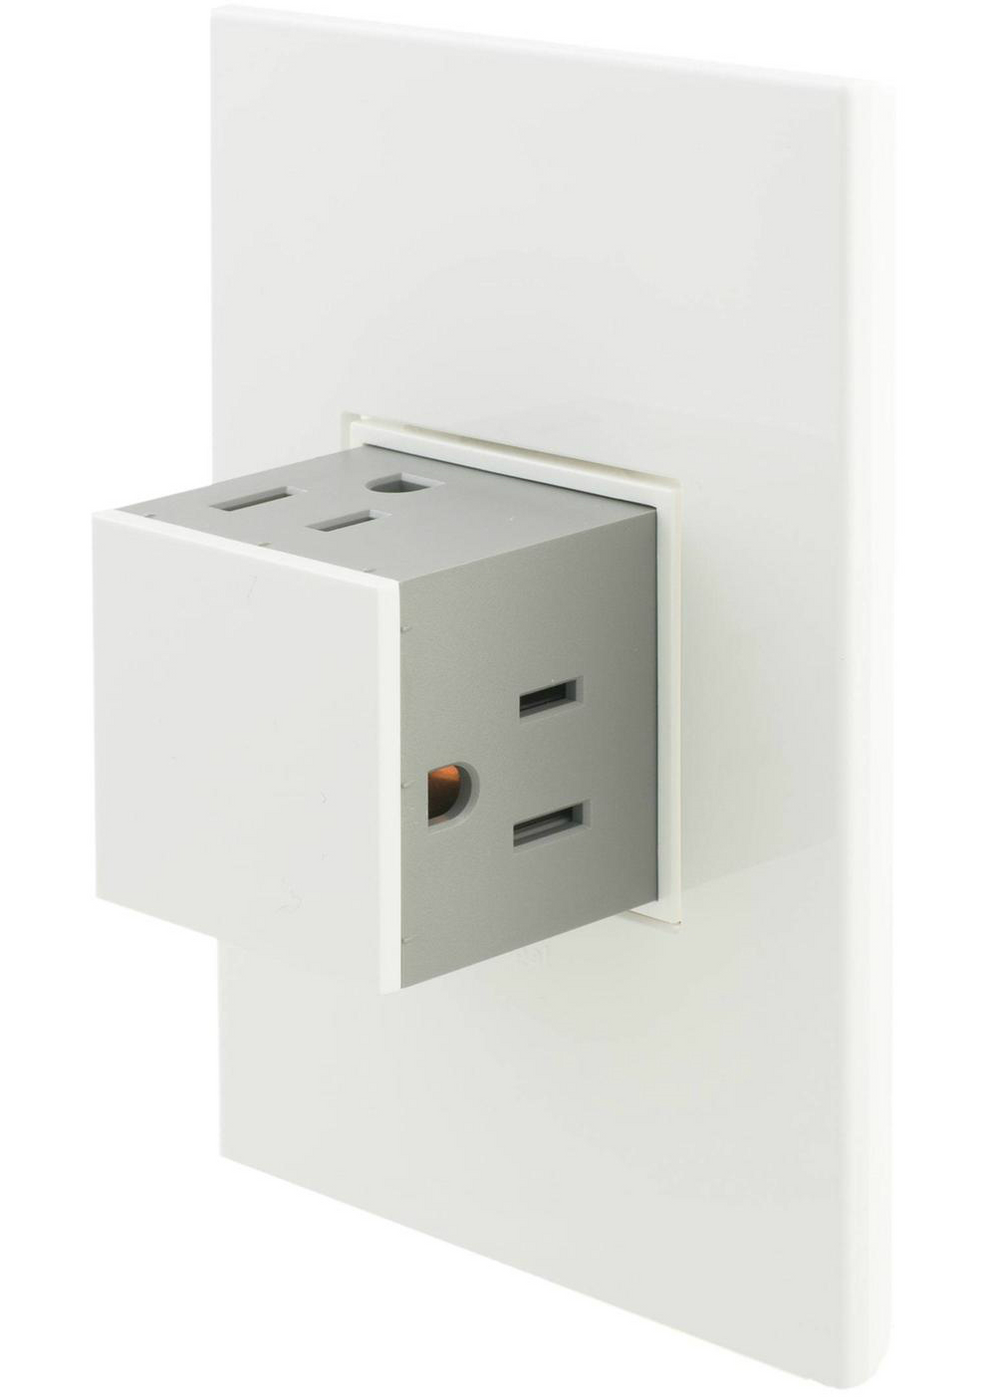 Pop-Out Outlets